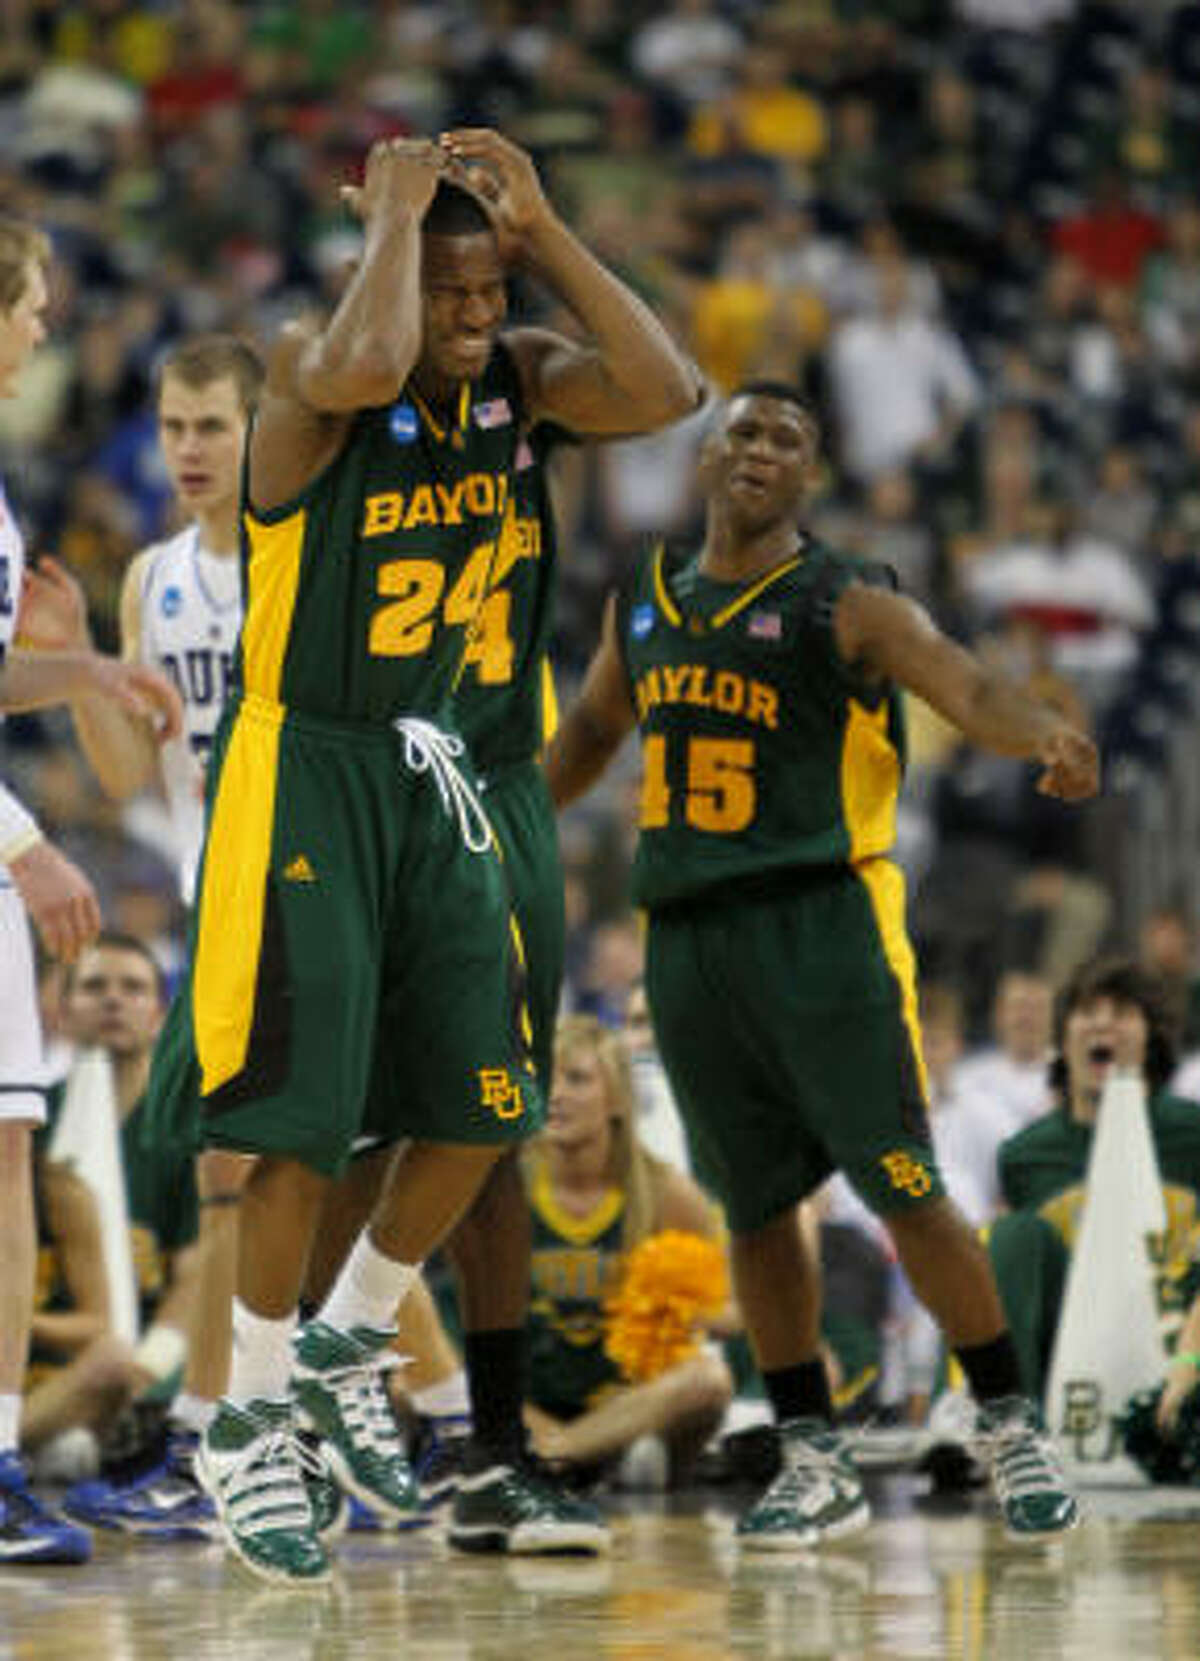 Baylor's greatest basketball season in 60 years ended with a 78-71 loss to Duke.